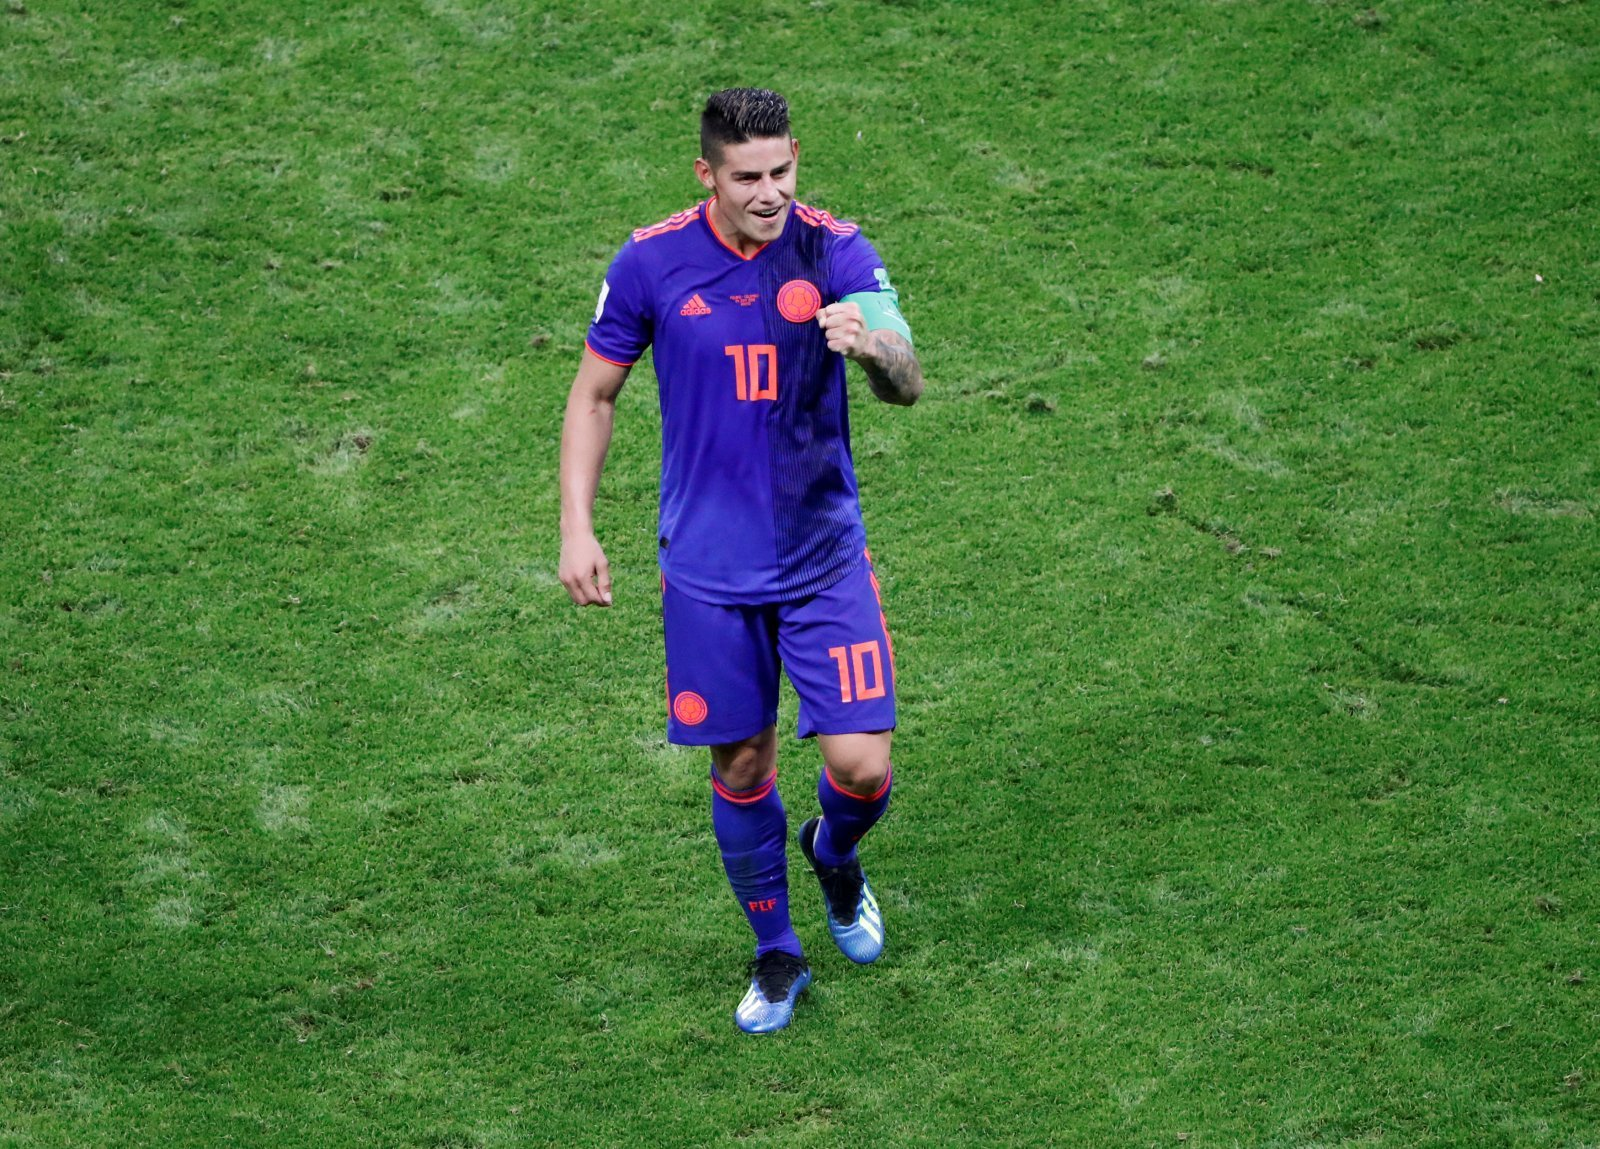 If Chelsea lose Willian this summer then James Rodriguez should be his replacement